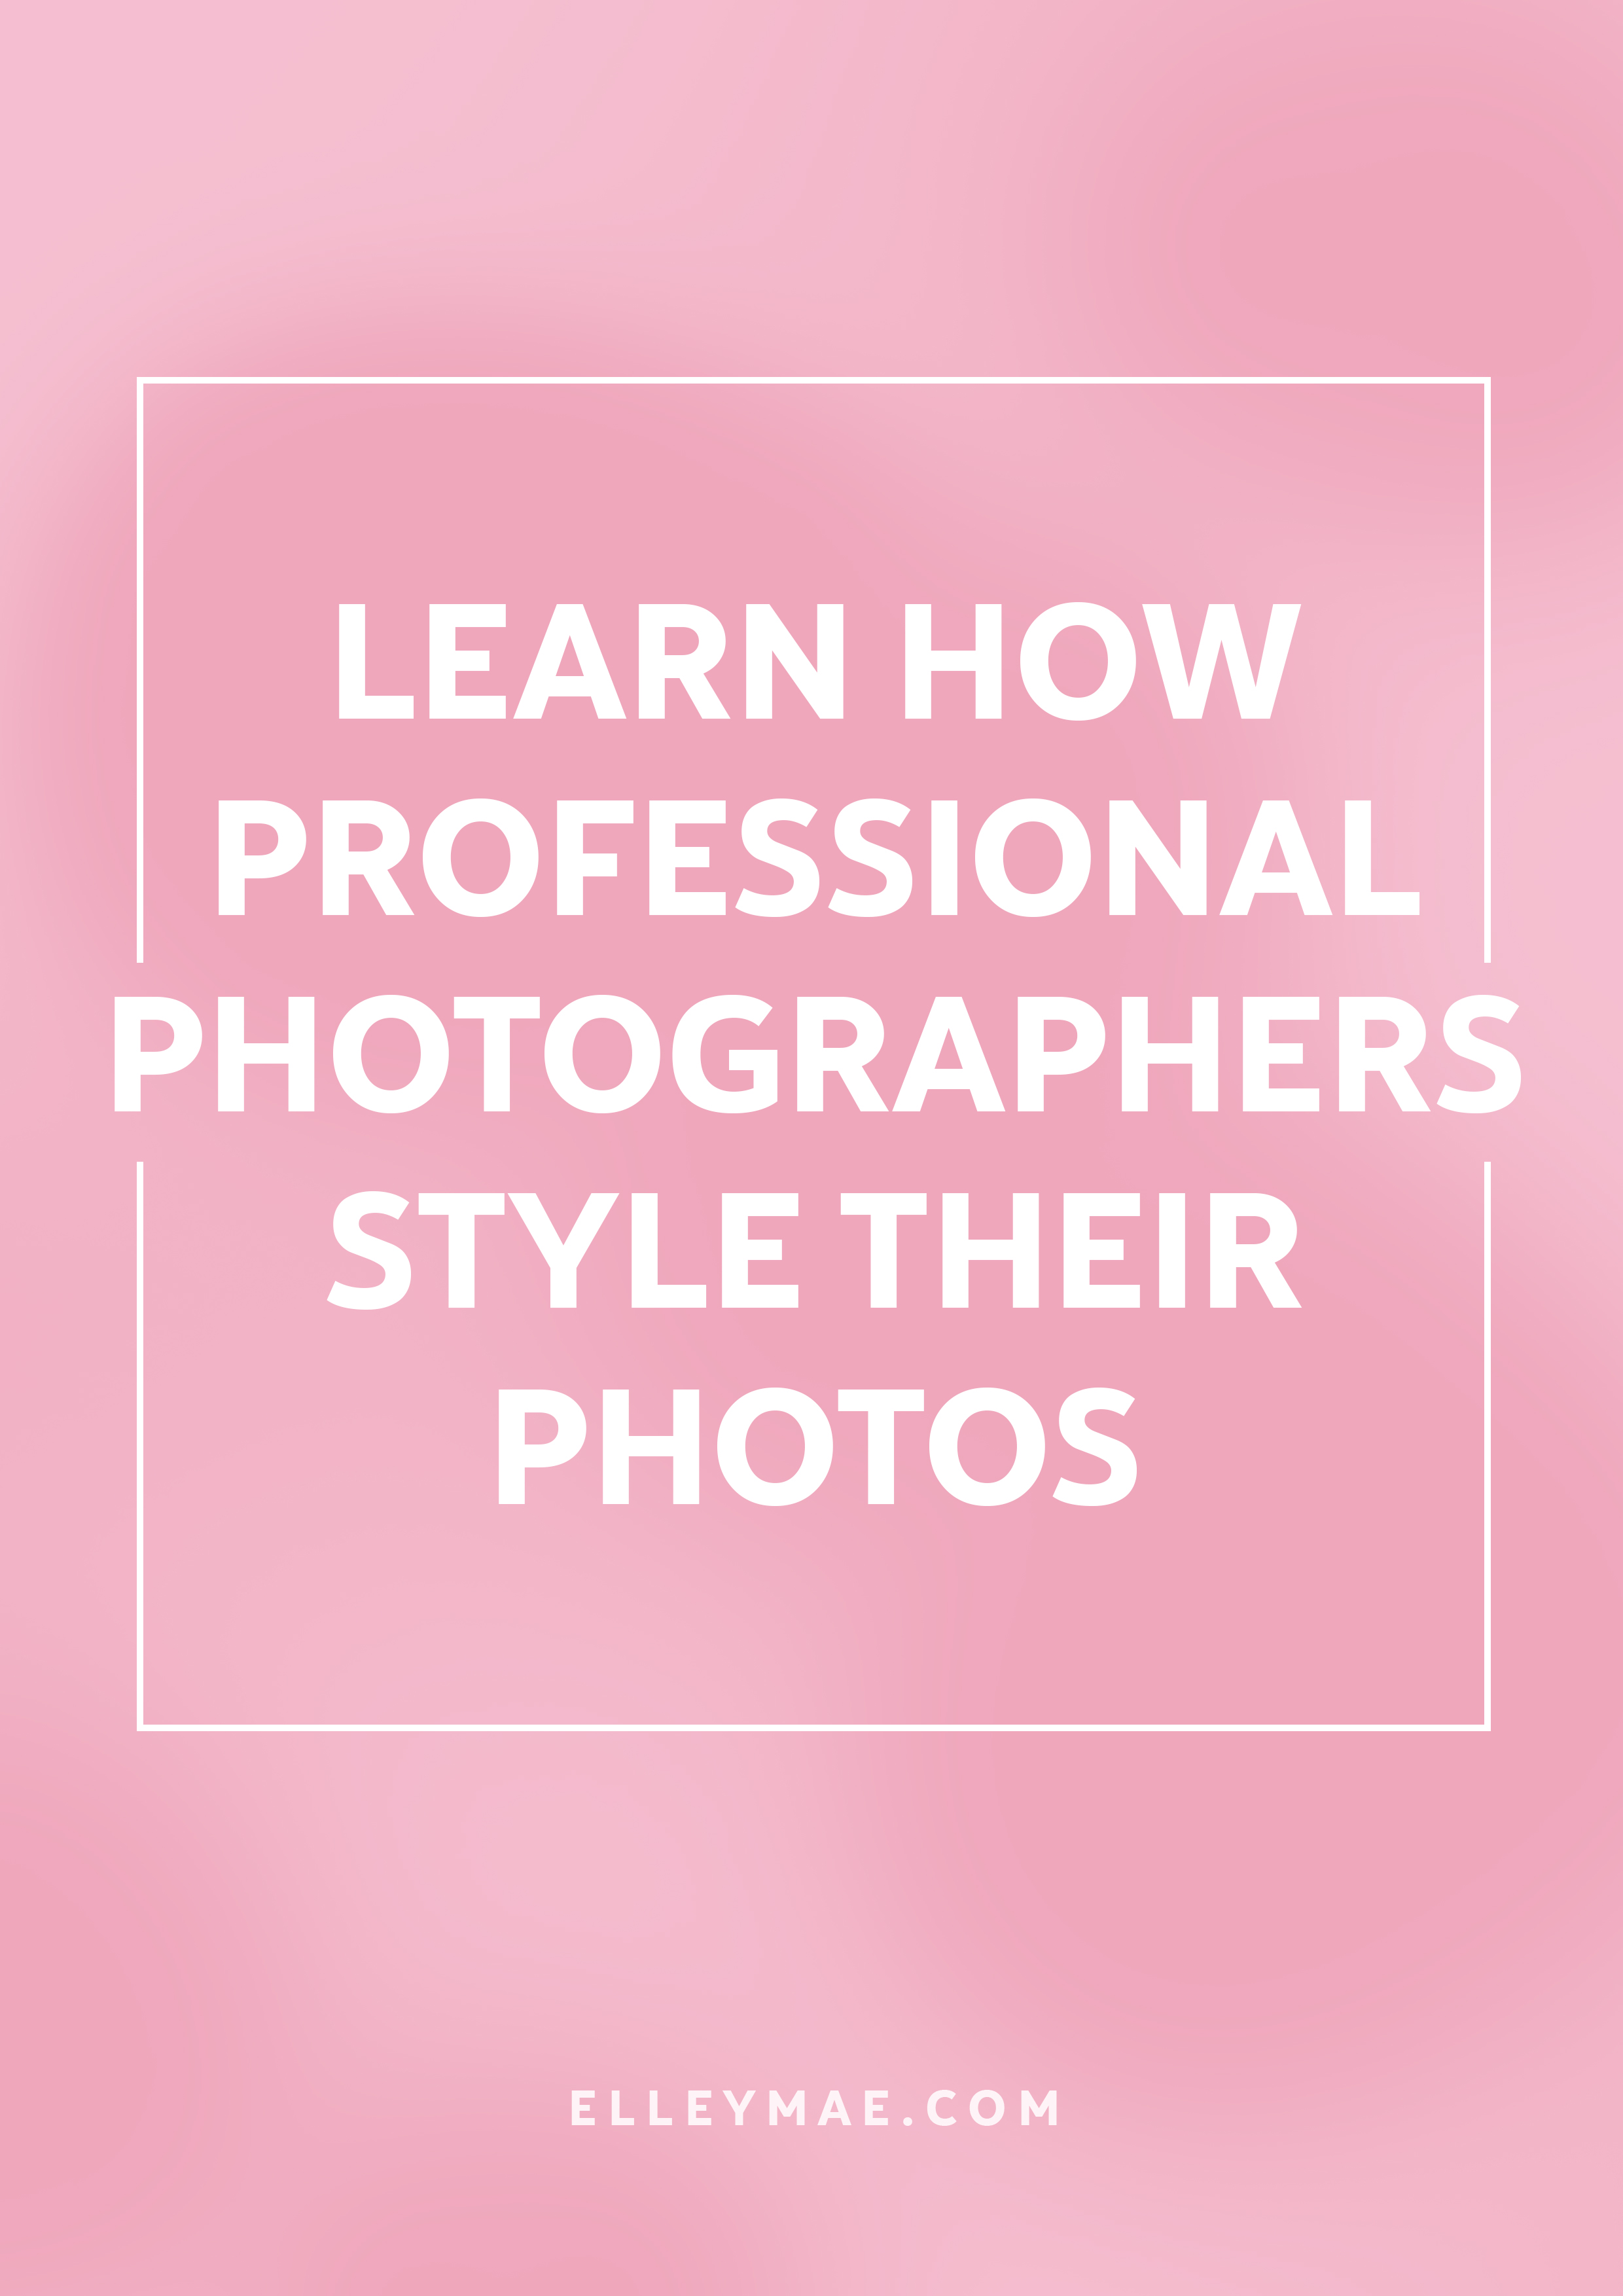 How To Nail Your Photo Styling Like A Pro Photographer   Learn how to master the art of photo styling with tips & tricks from a professional photographer. Amp up your Instagram flatlay game, theme your Instagram & enhance your blog photography all through your photo styling. It's seriously that simple!   Learn more from Elley Charles, a professional photographer turned social media obsessed tech geek & part time blogger. ElleyMae.com